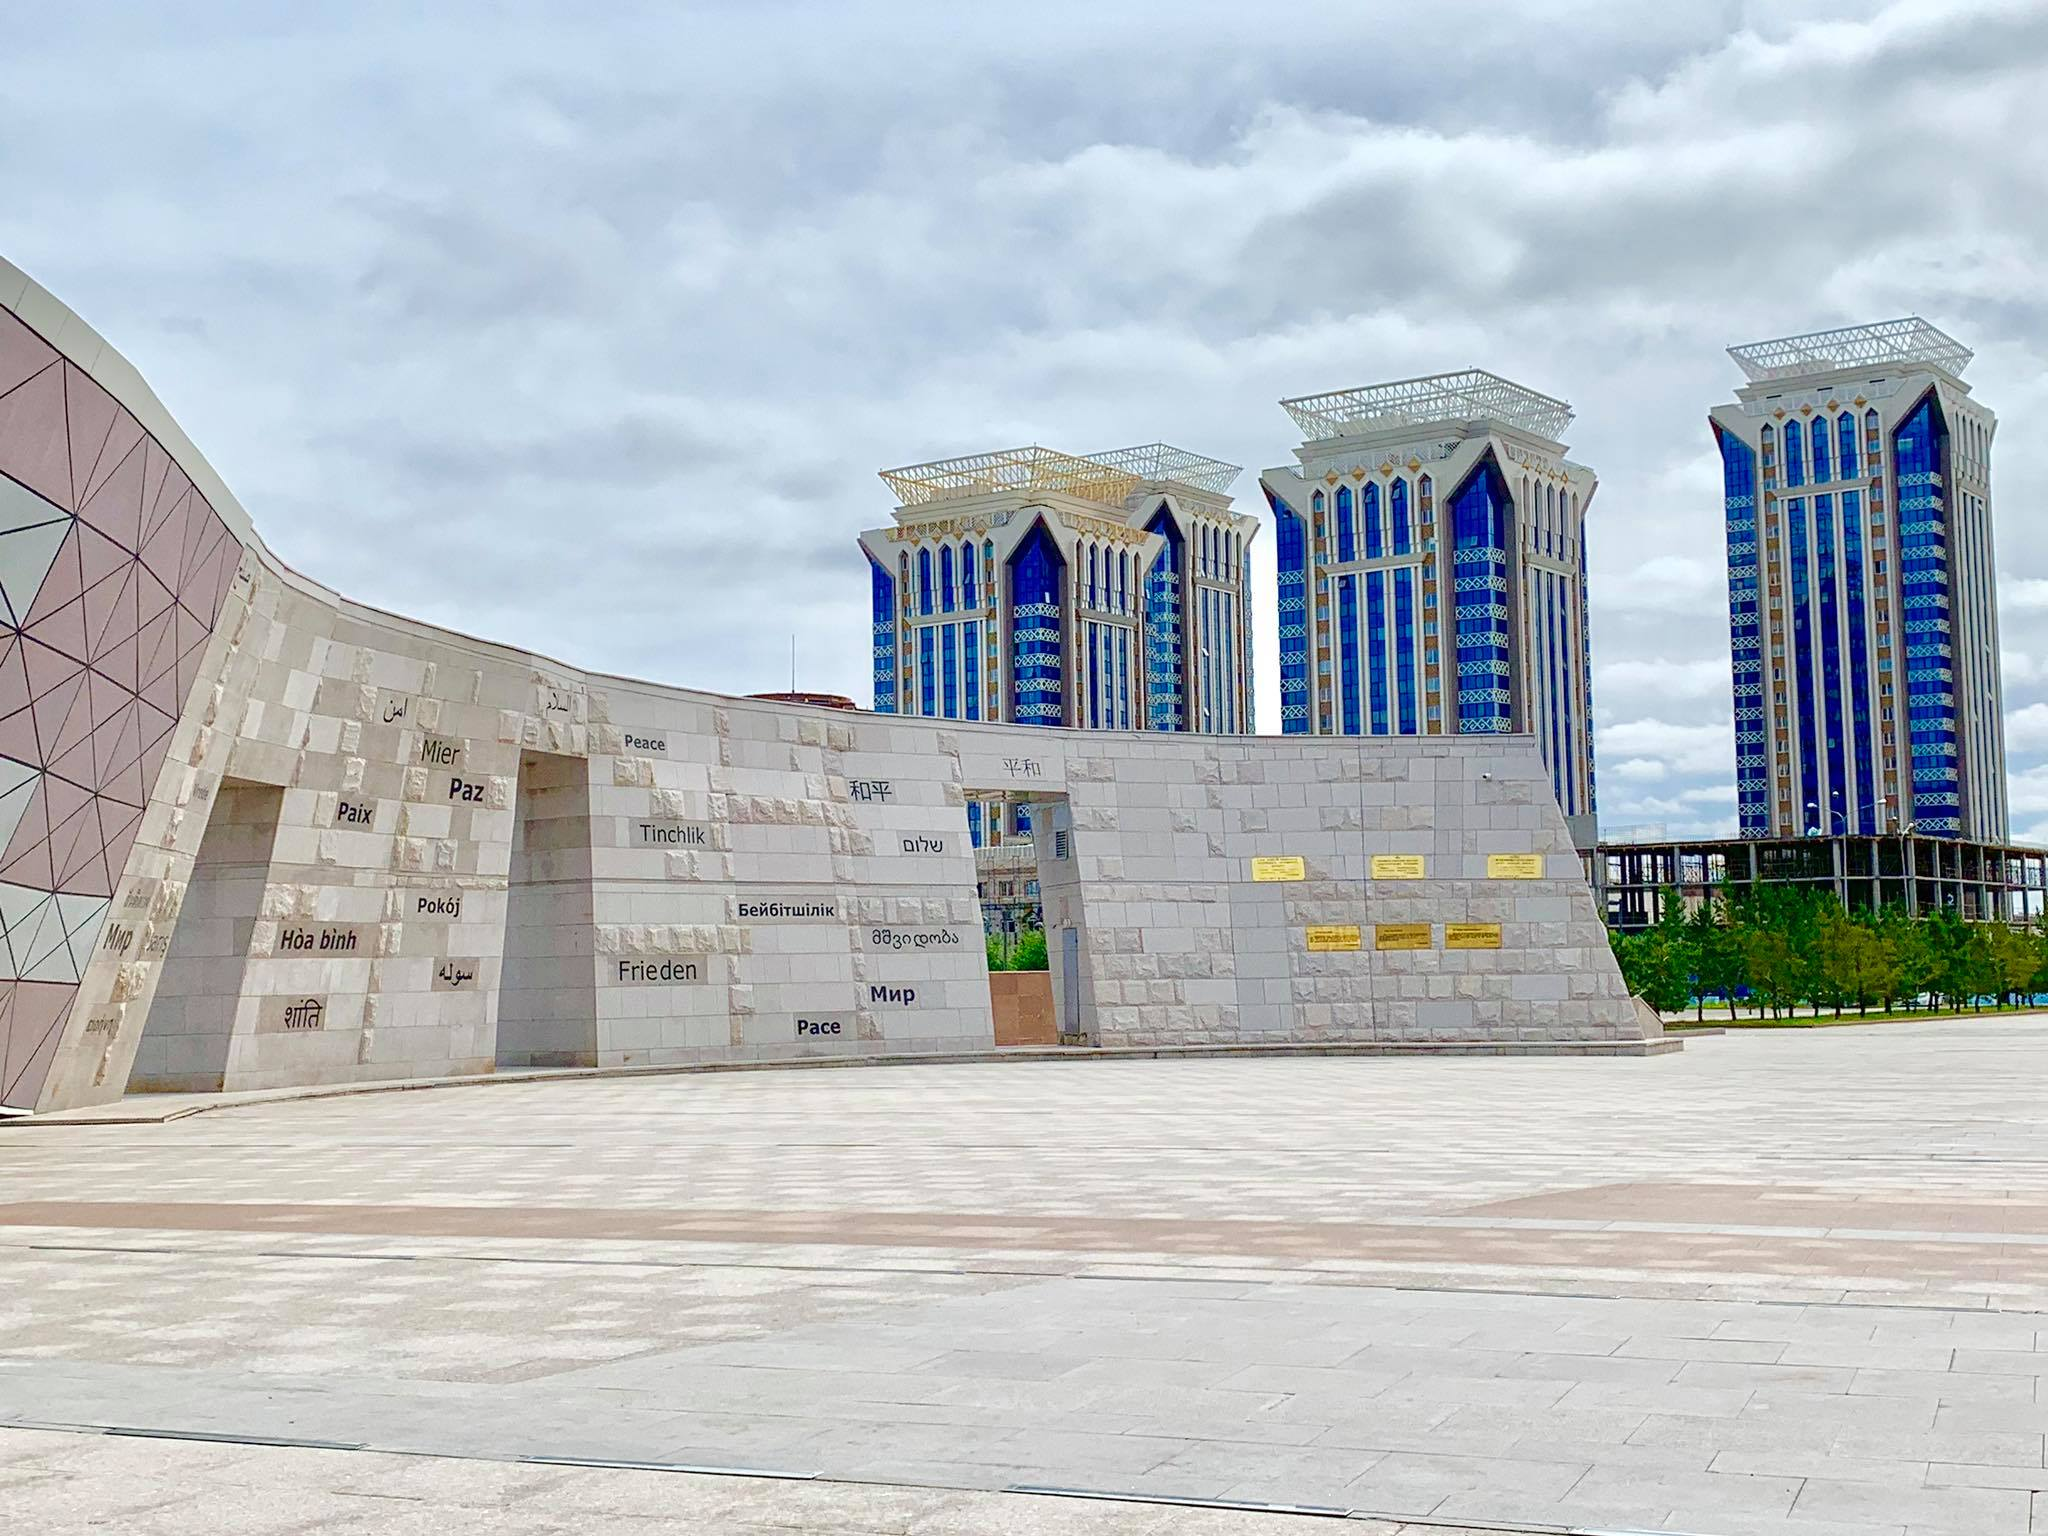 Kach Solo Travels in 2019 Nursultan  Astana - the City of the Future3.jpg